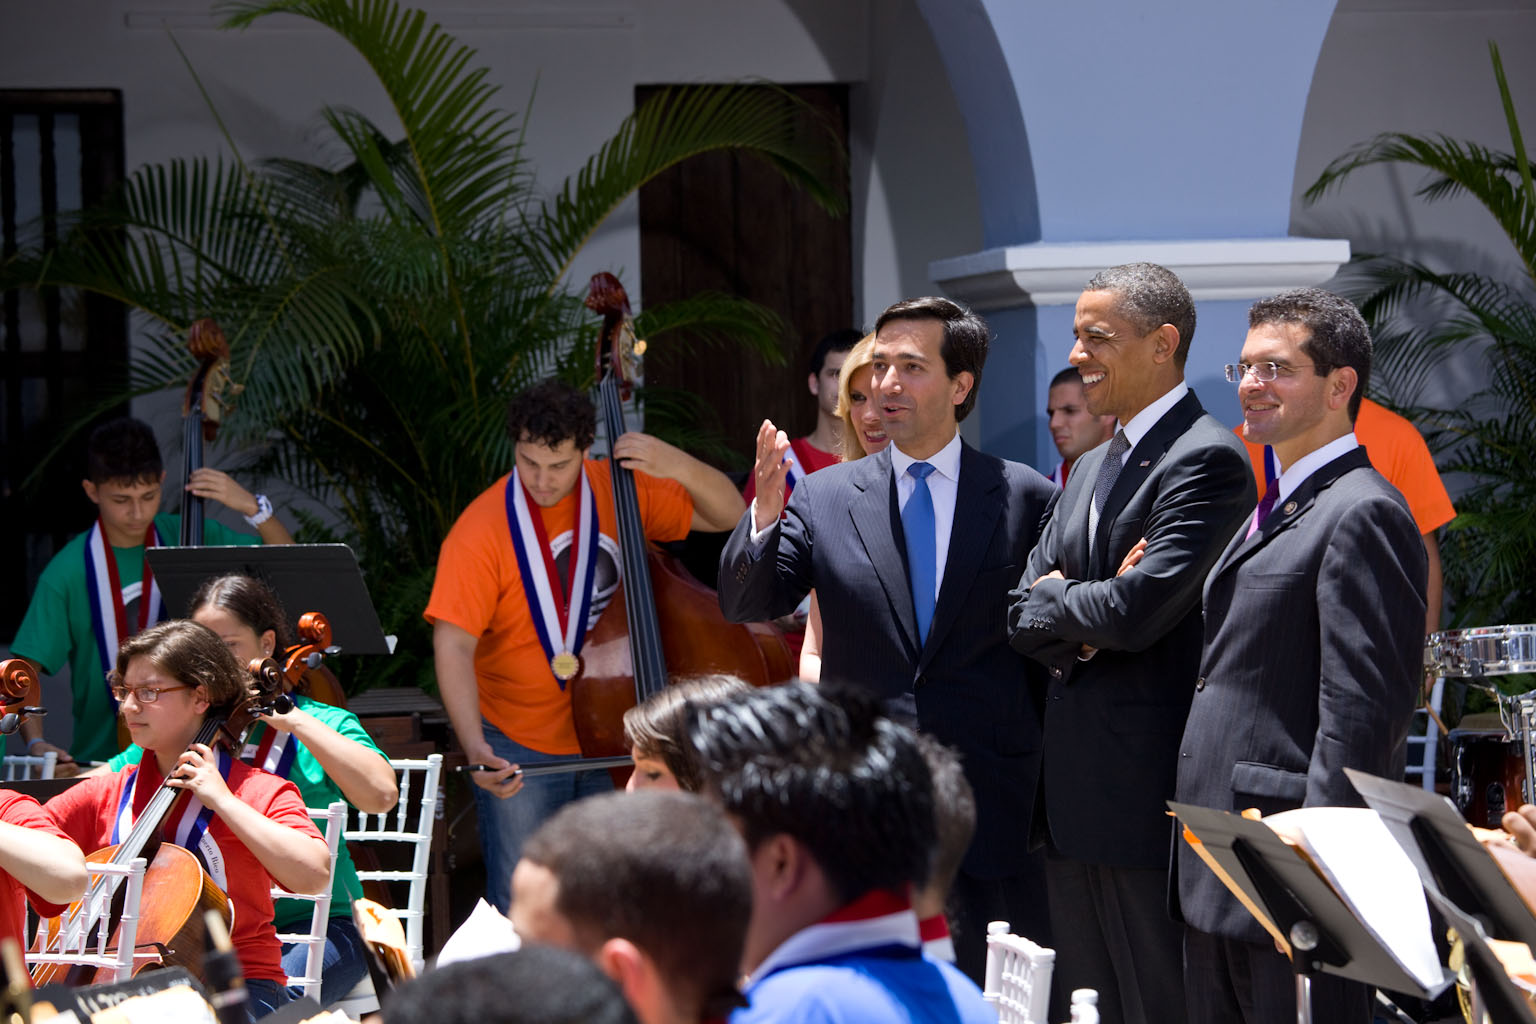 President Obama with Governor and Band [Spanish Caption]